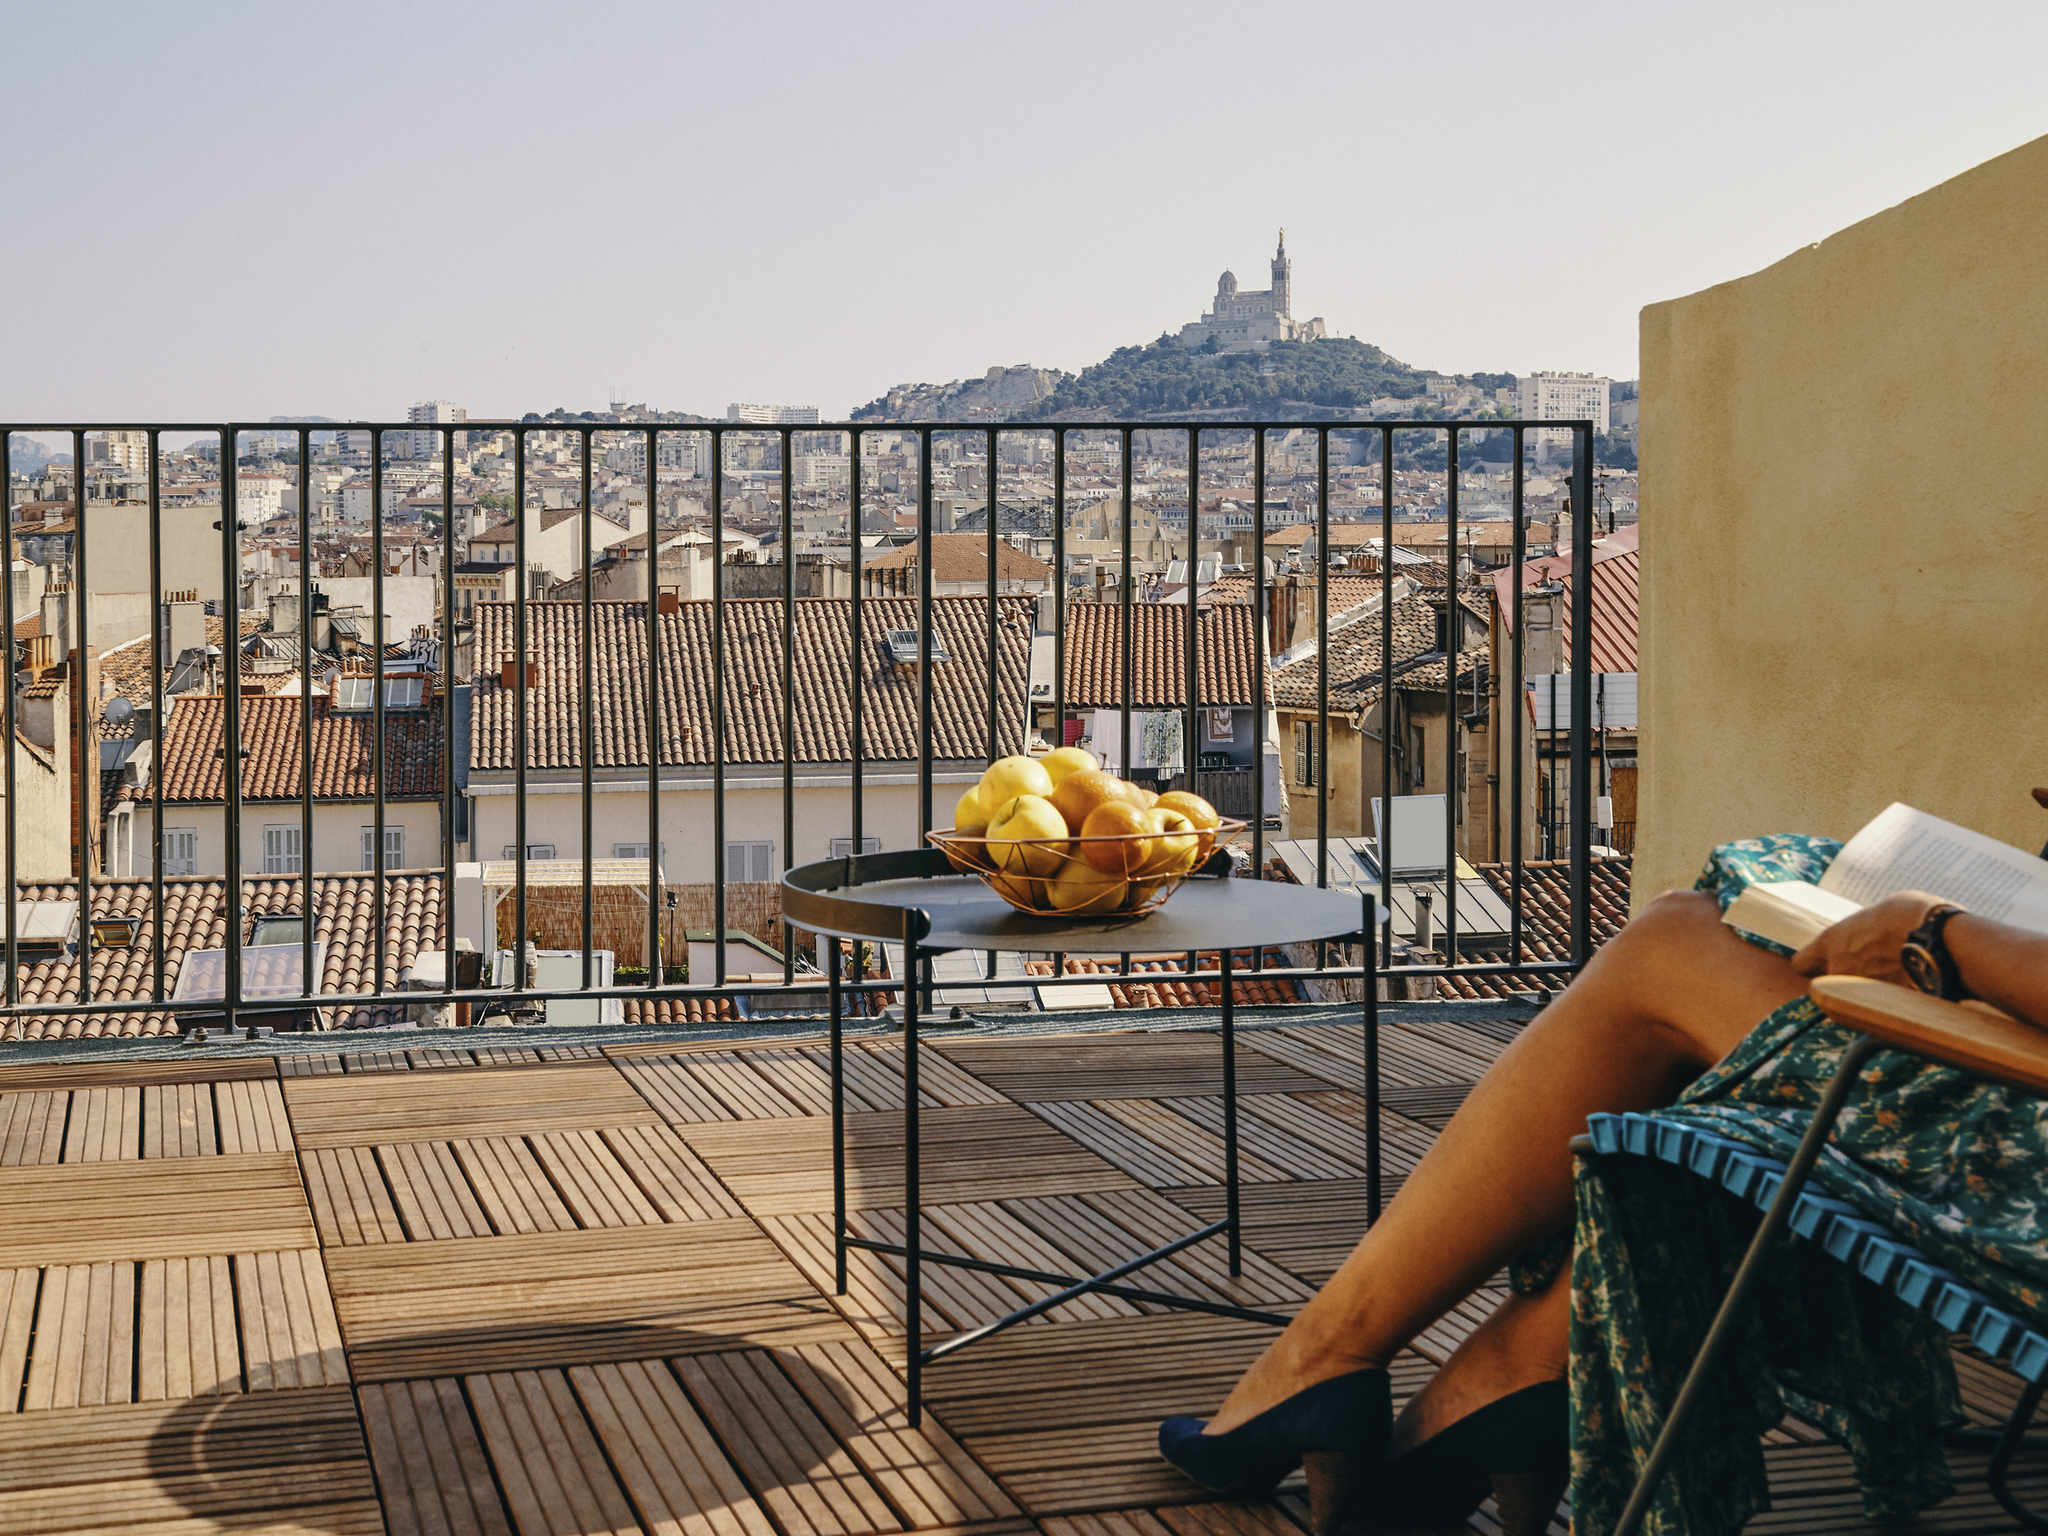 Hotel - Hotel Mercure Marseille Canebière (open July 2019)